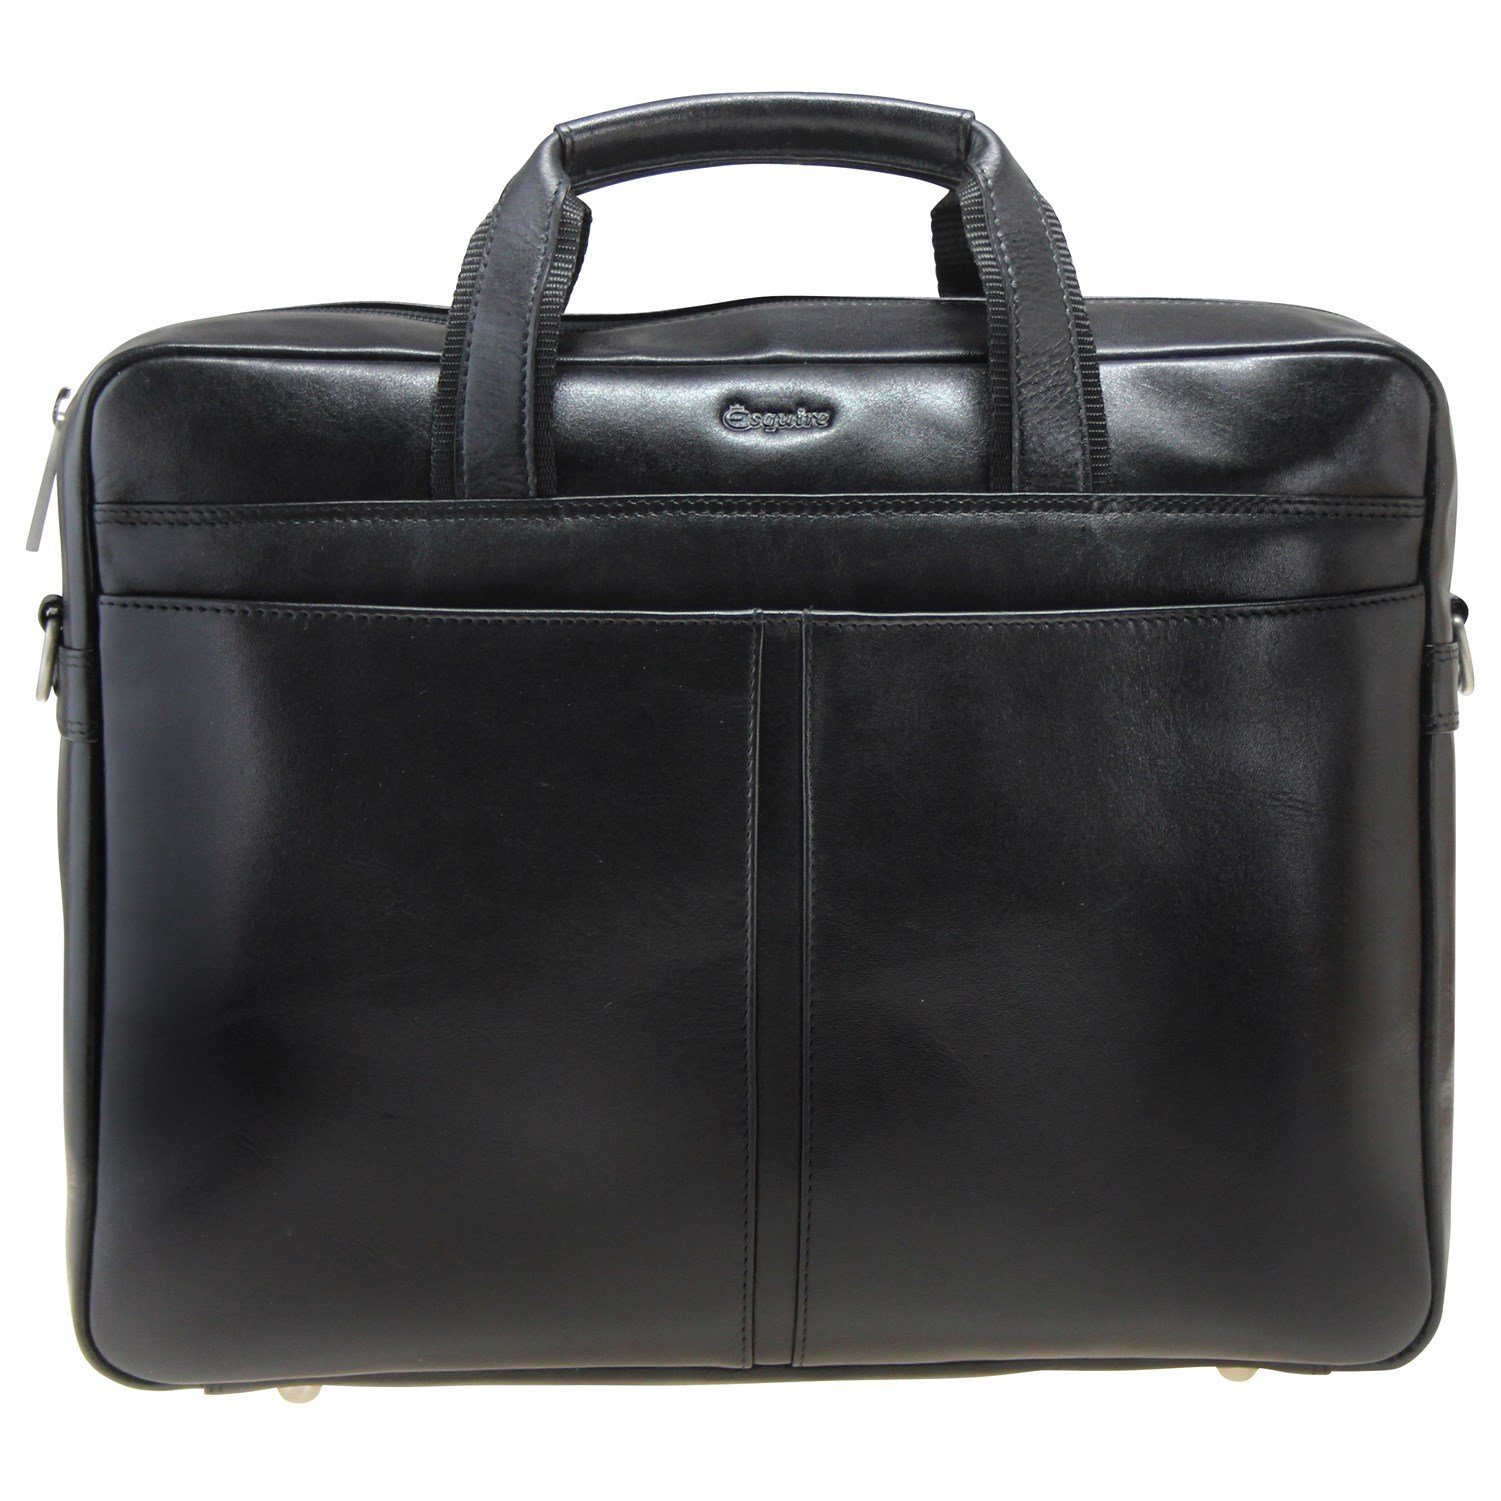 Esquire Business Aktenmappe Leder 37 cm Laptopfach